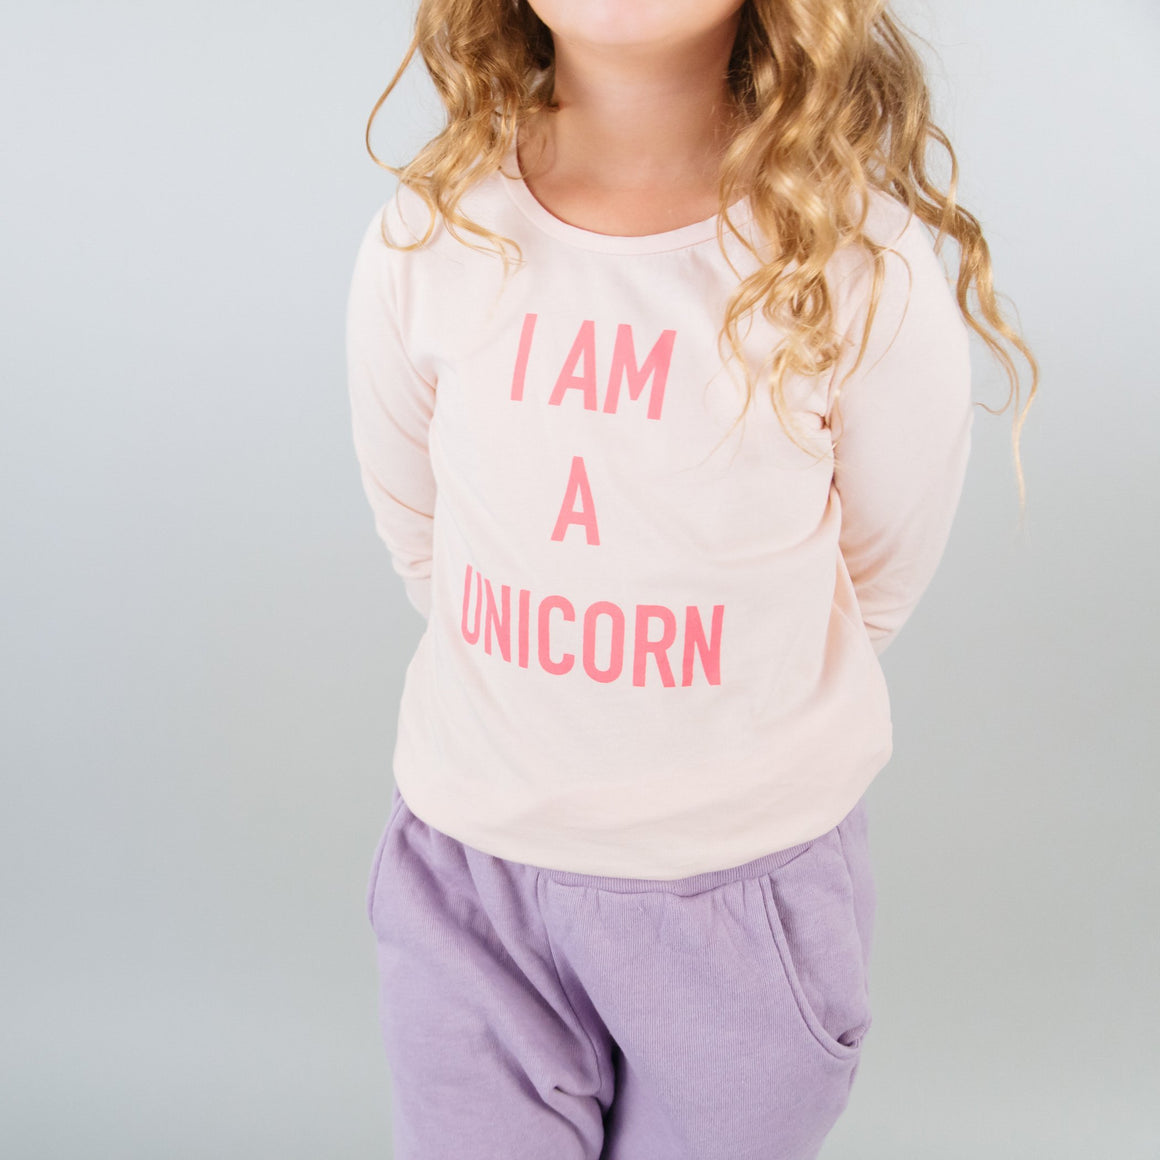 I Am a Unicorn Graphic T-shirt, L/S, Light Pink